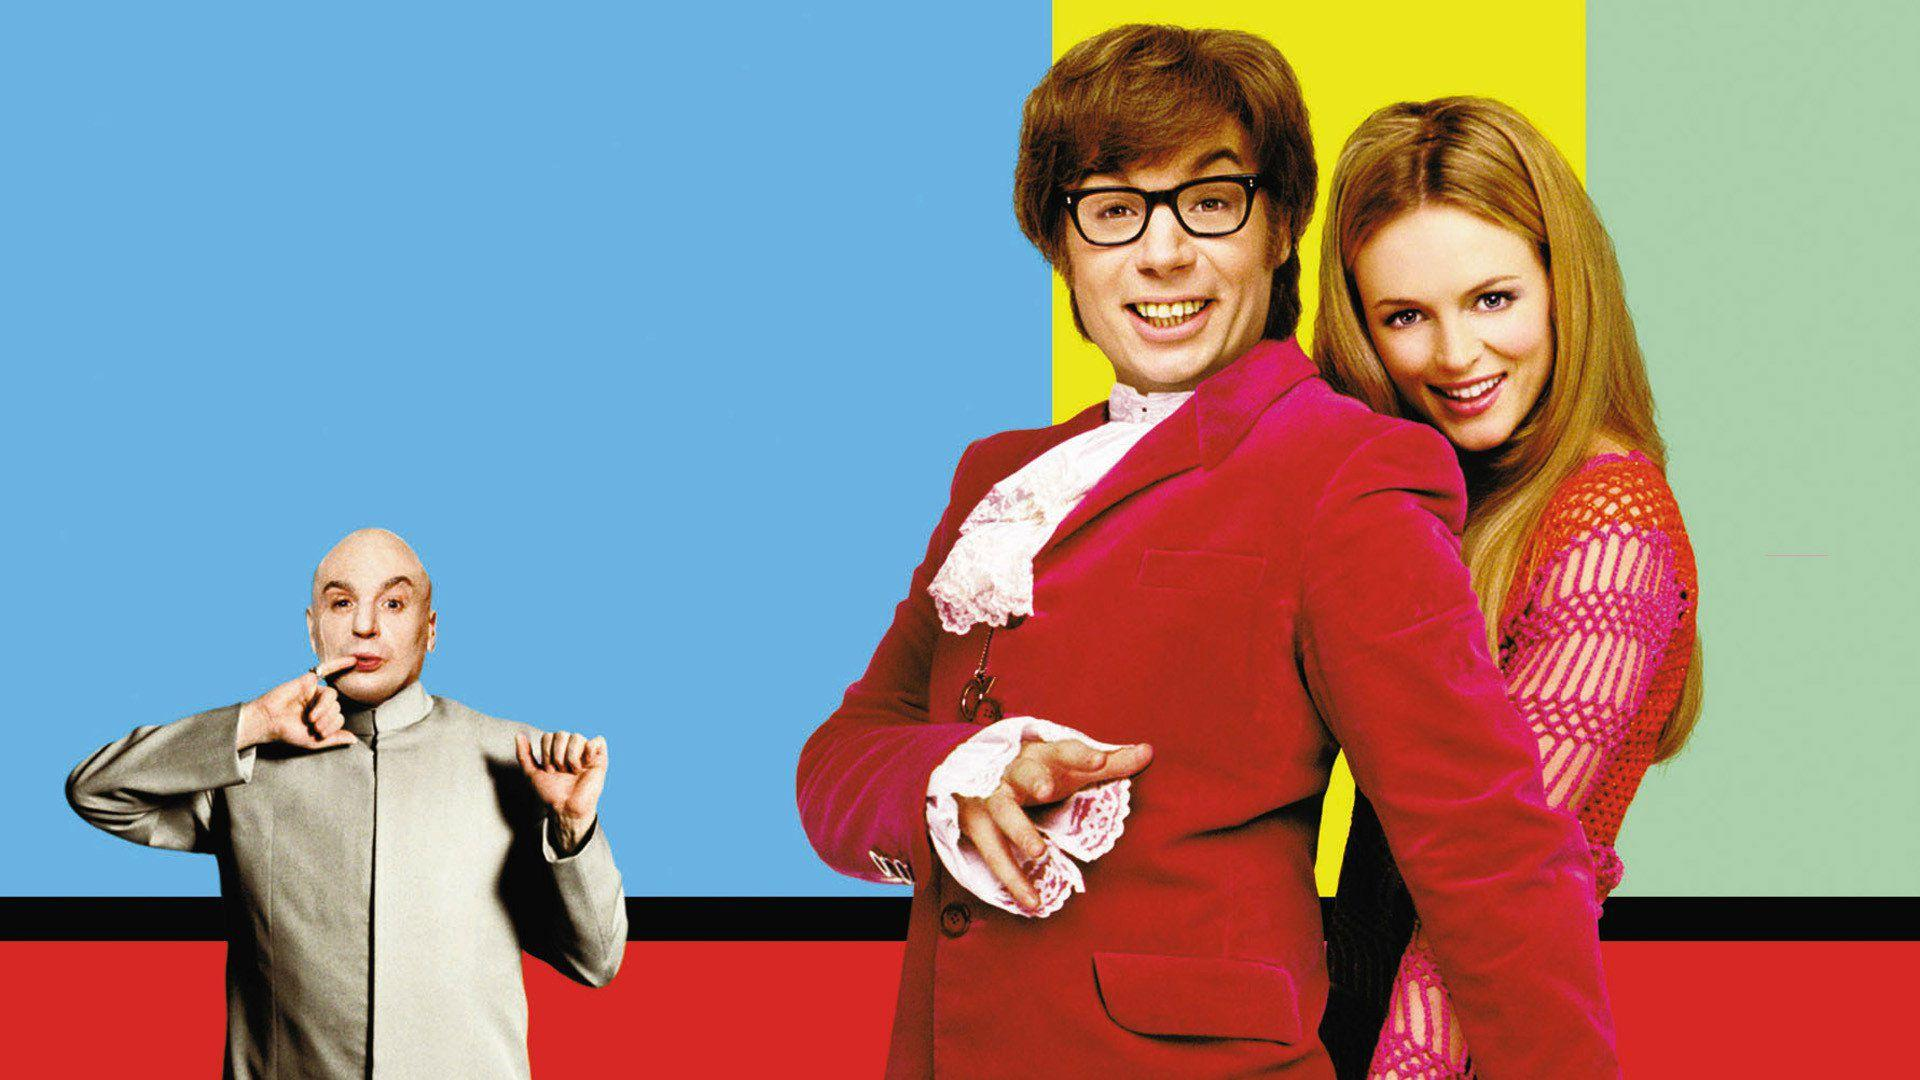 Austin Powers: The Spy Who Shagged Me Full HD Bakgrund and